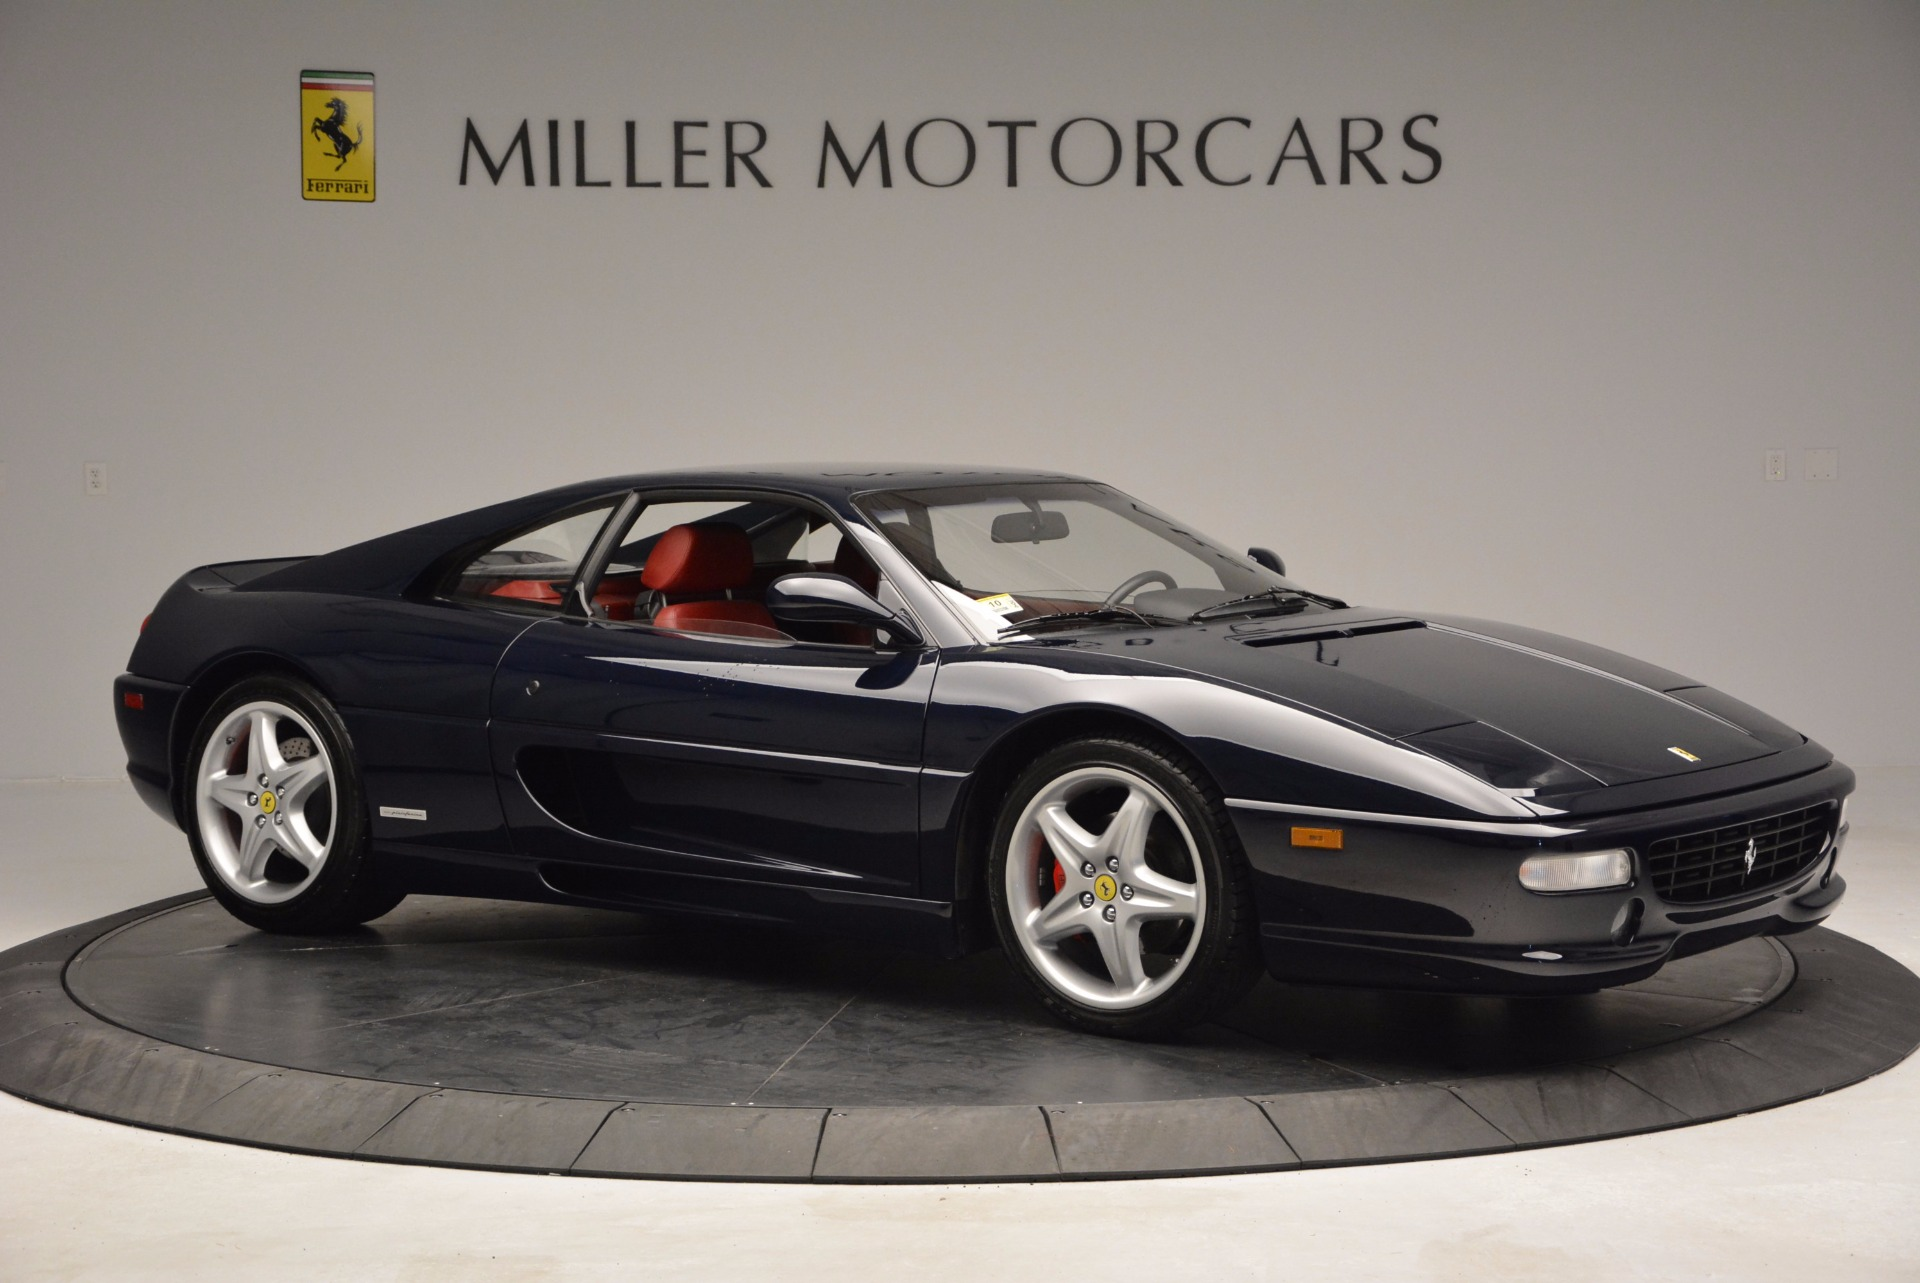 Used 1999 Ferrari 355 Berlinetta For Sale In Westport, CT 855_p11